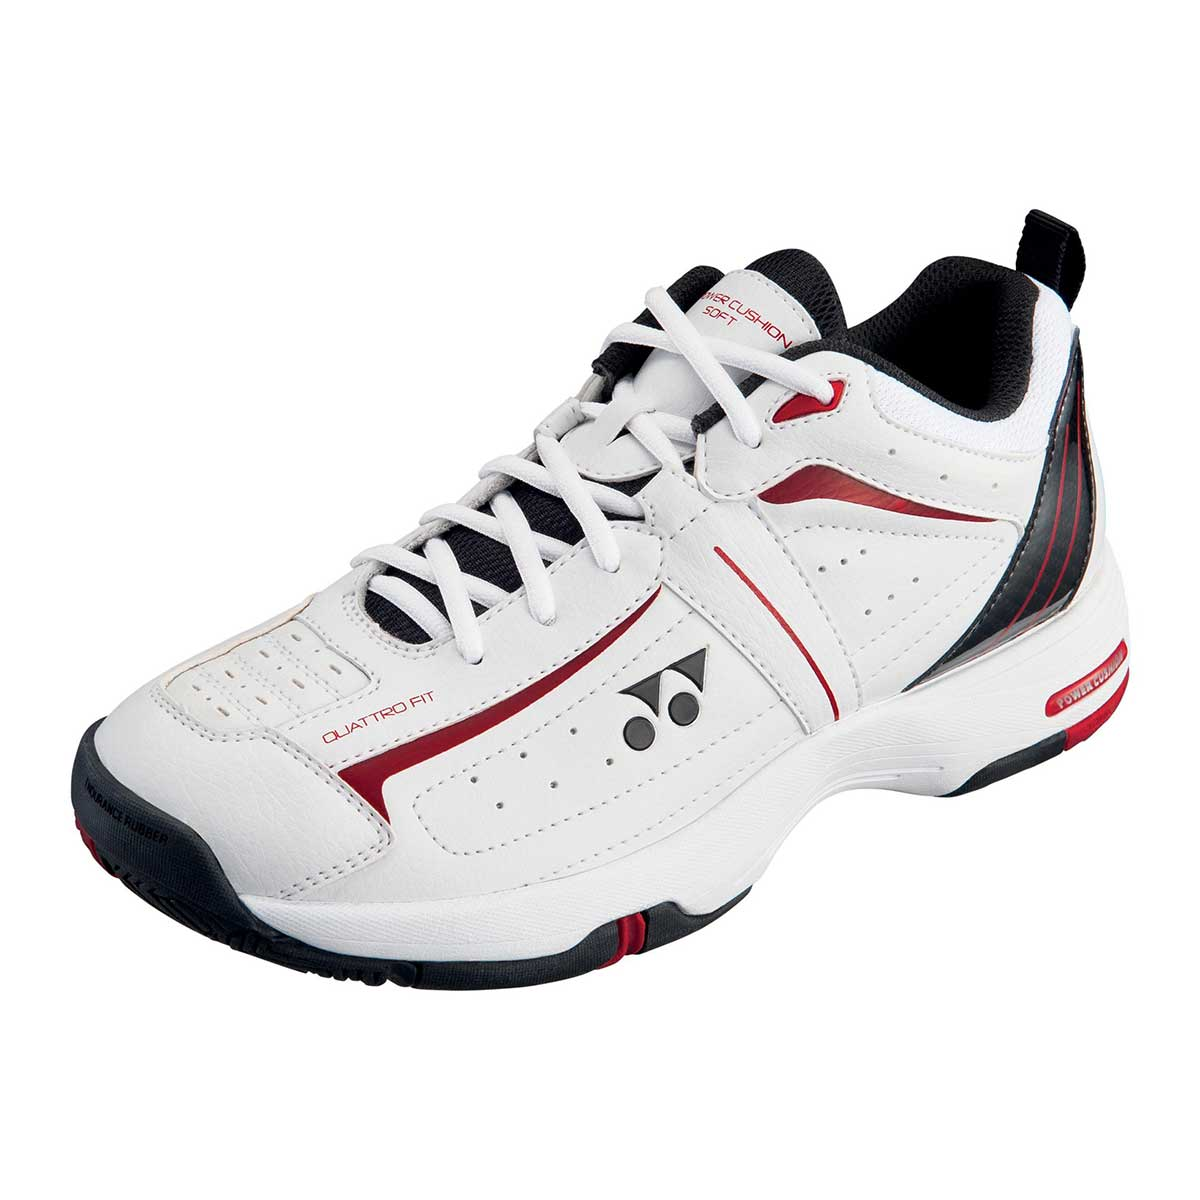 Buy Yonex SHT Soft Tennis Shoes Online India